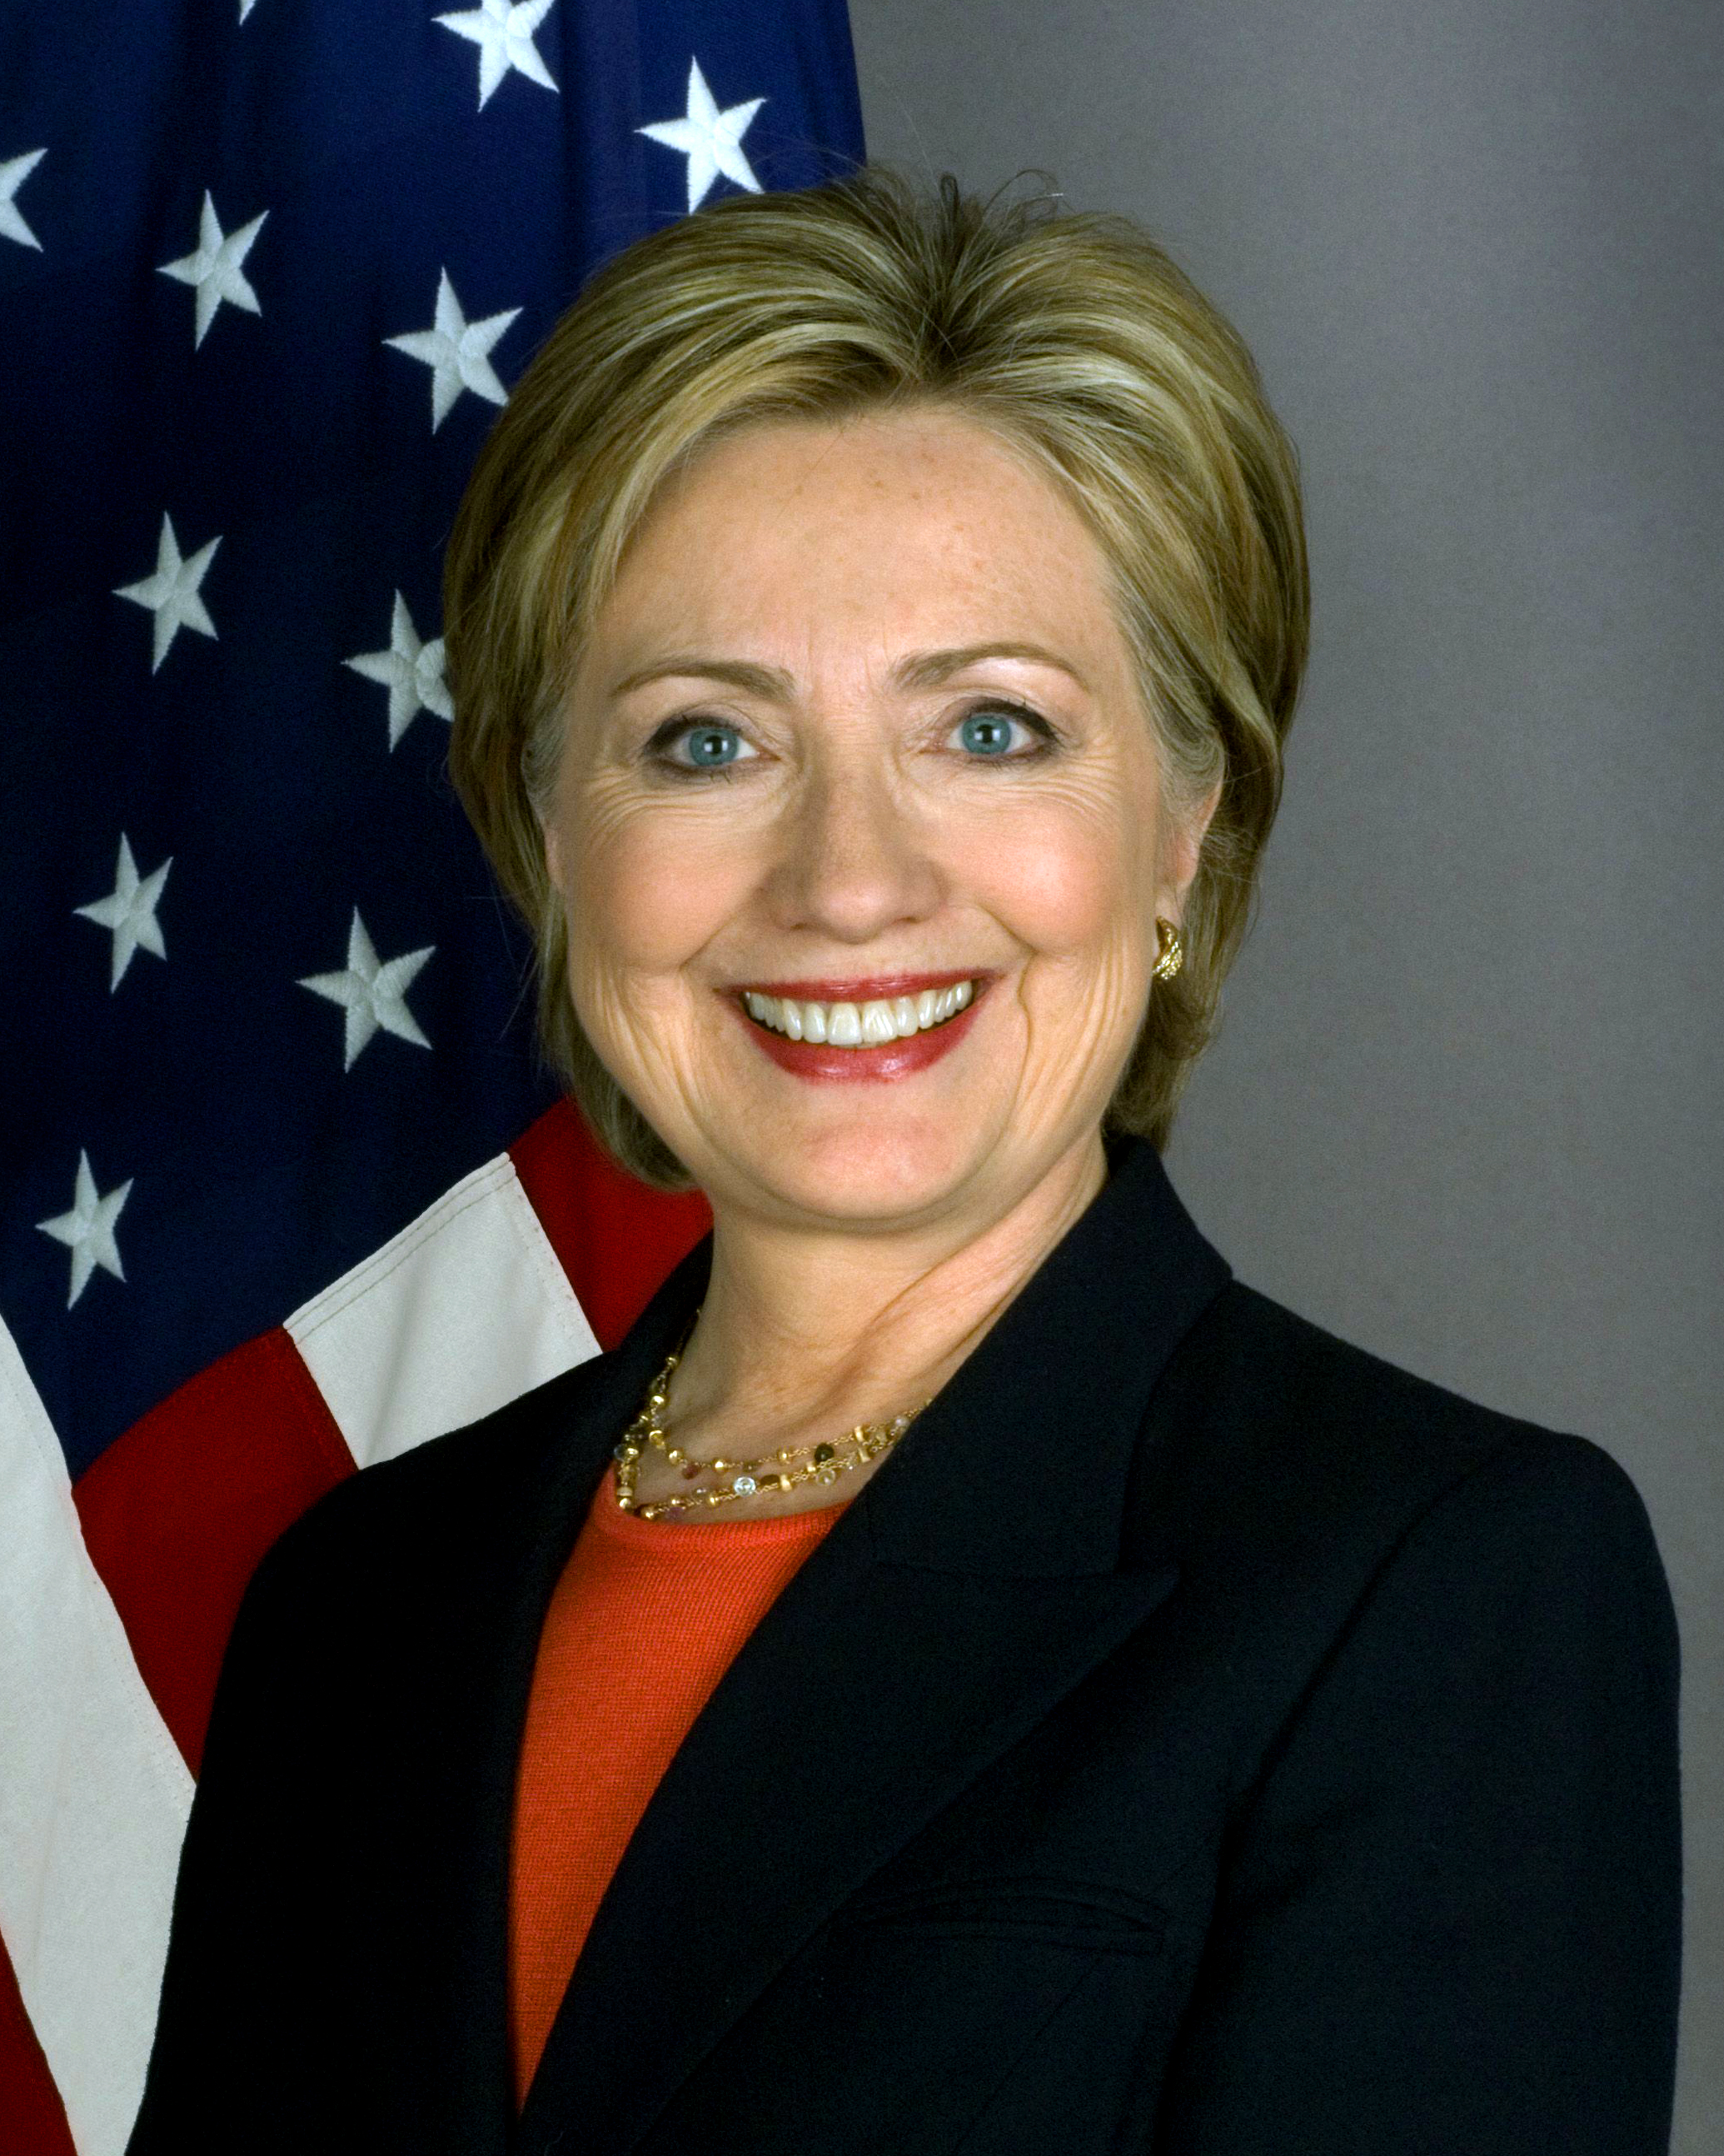 hillary clinton wikipedia